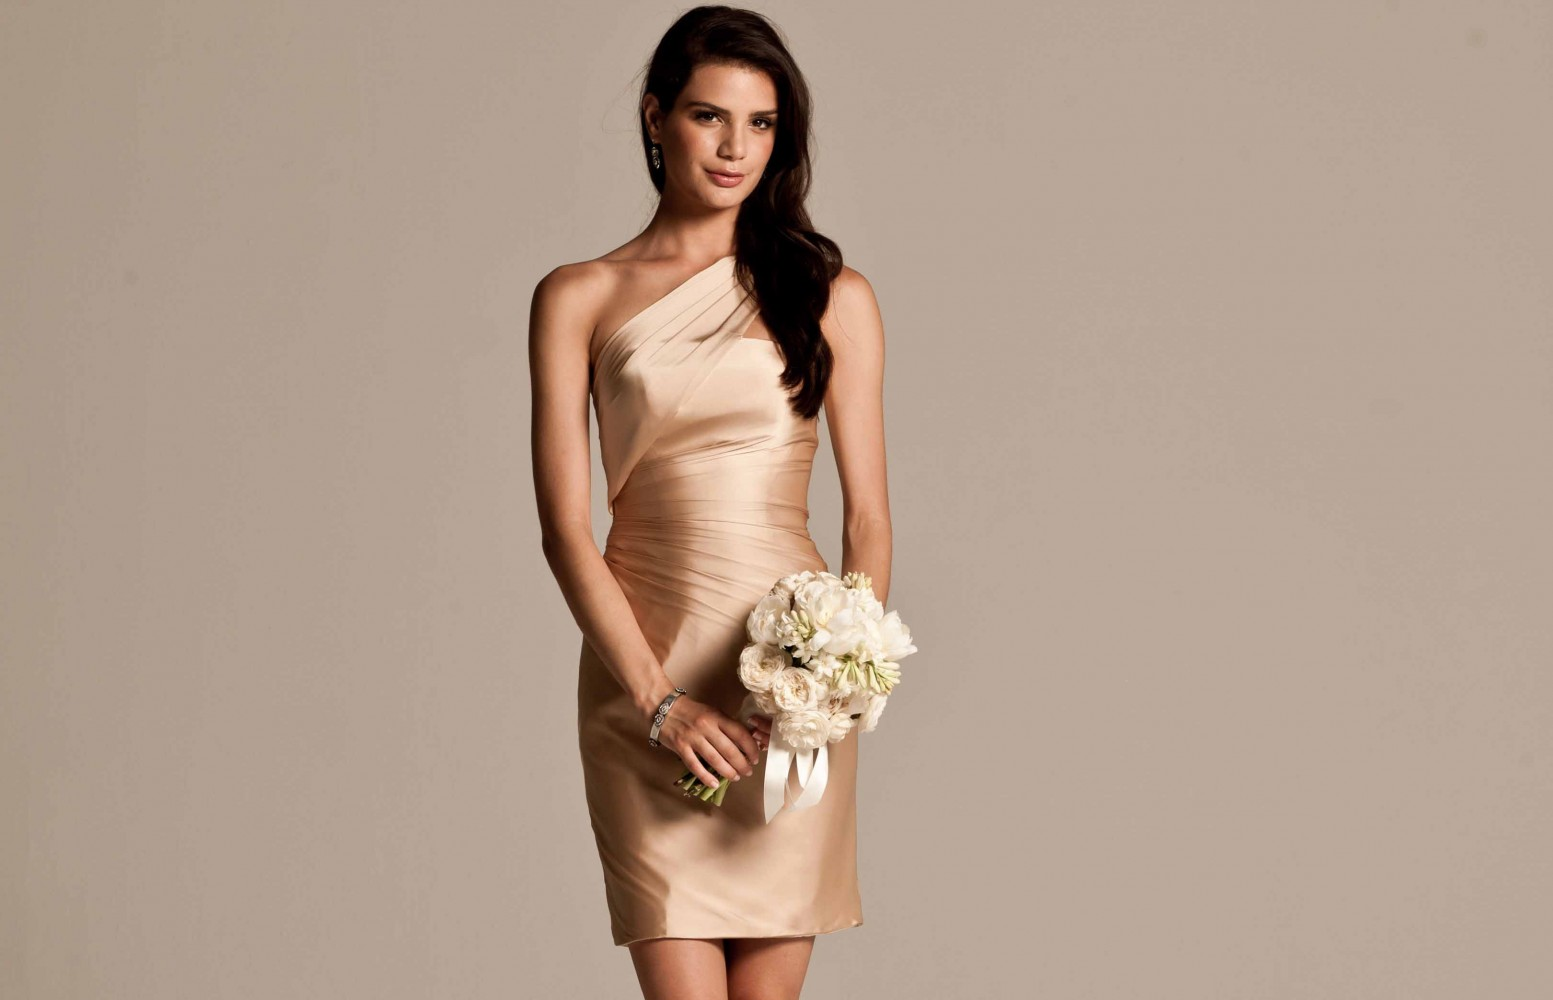 Real Bridesmaids In Beige Bridesmaid Dresses: Bridesmaid Dresses